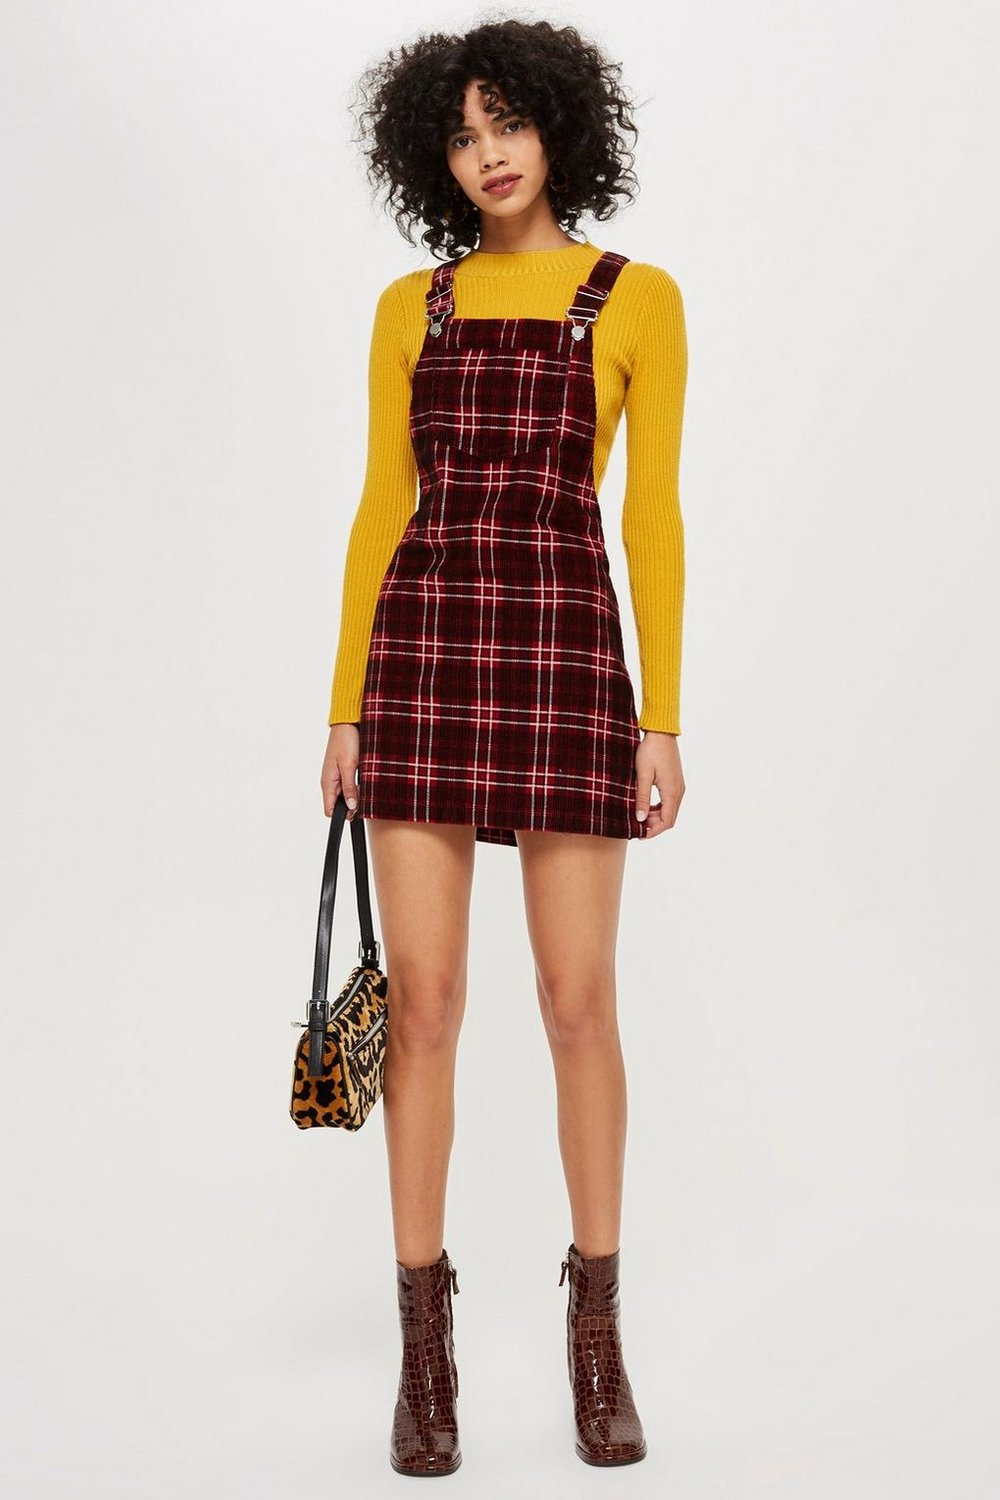 topshop plaid dress.jpg